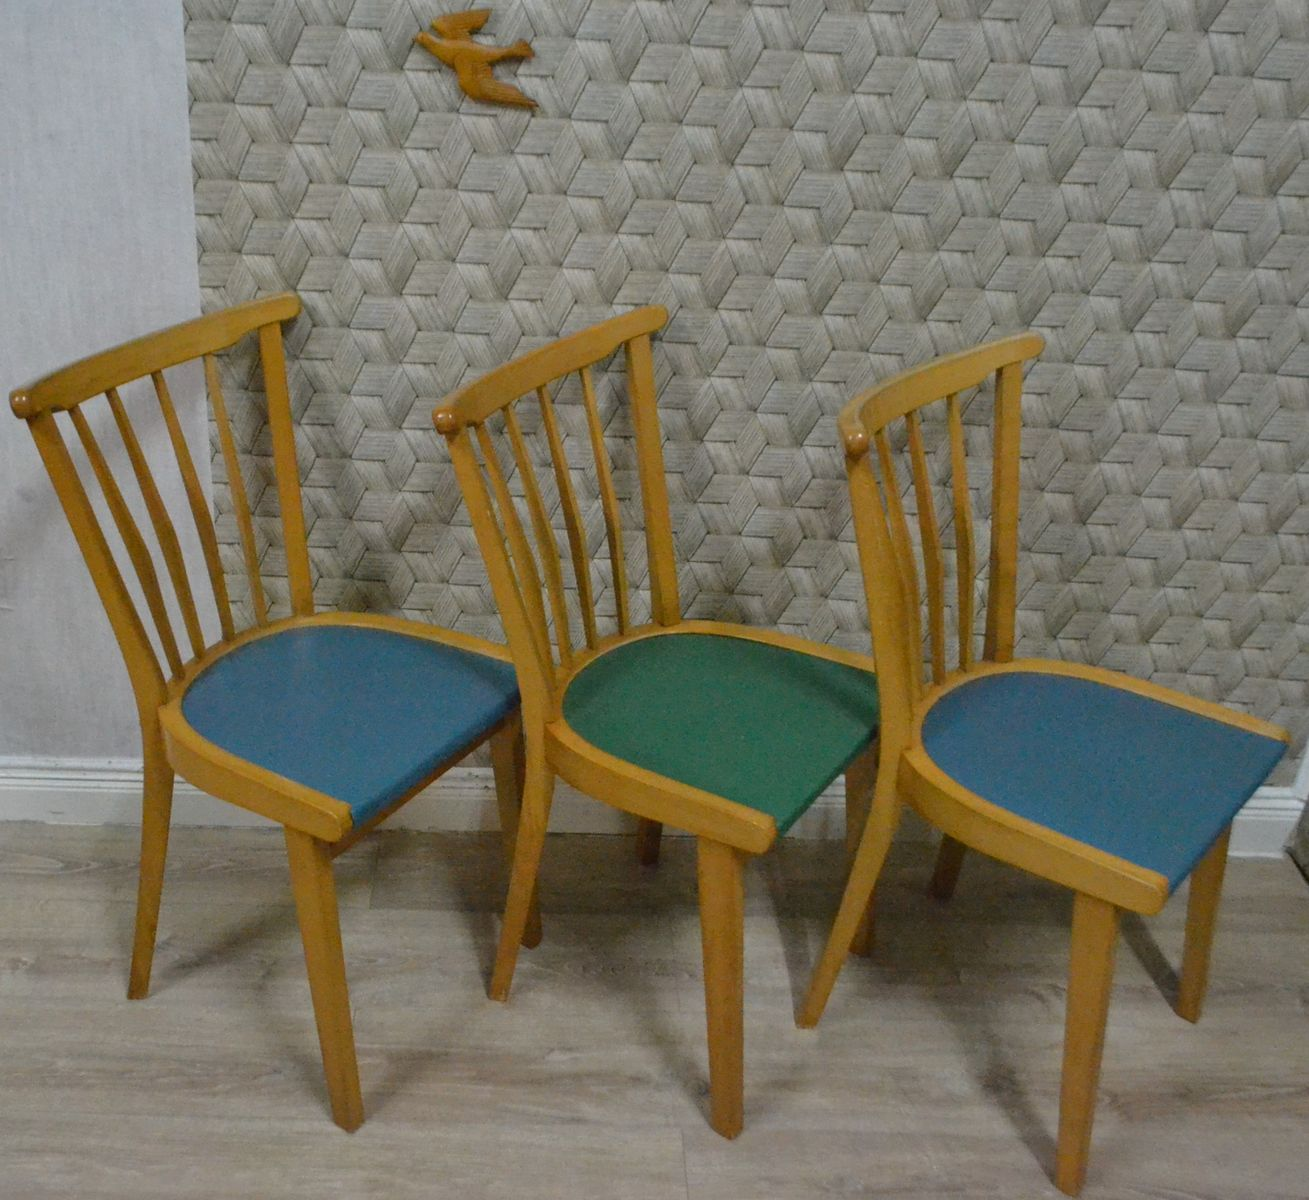 wooden kitchen chairs 1950s set of 3 for sale at pamono. Black Bedroom Furniture Sets. Home Design Ideas